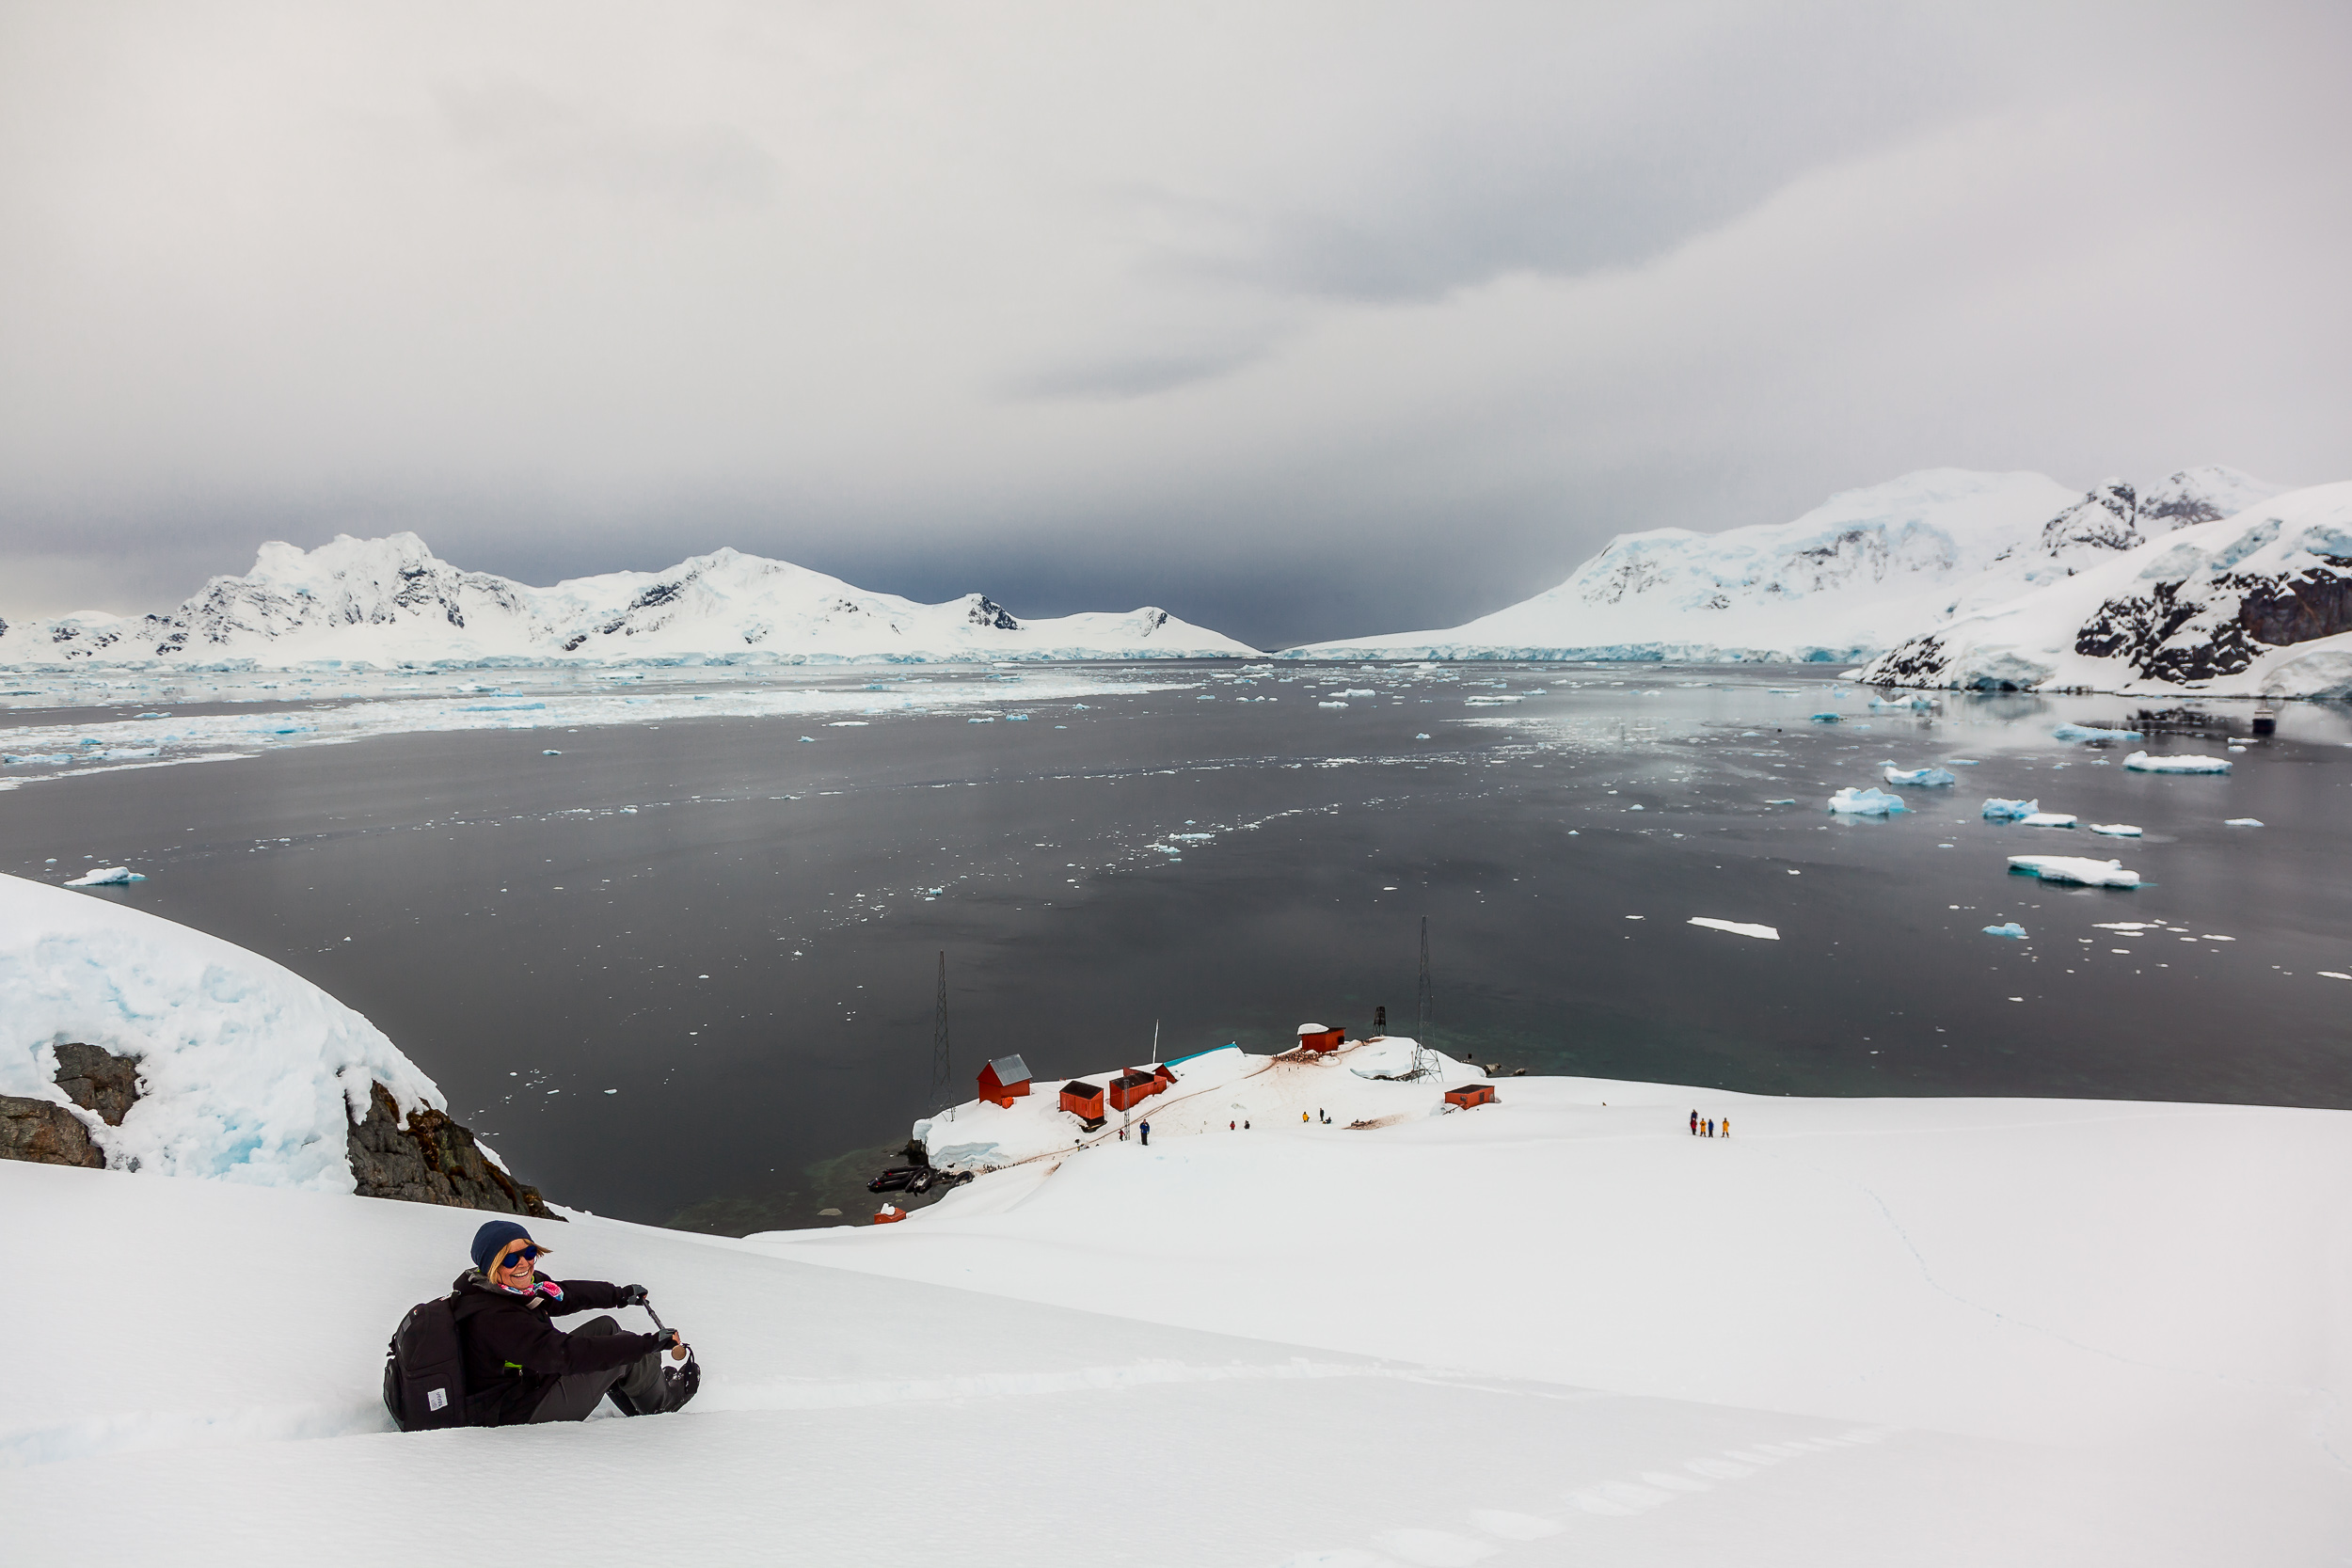 After making the arduous climb up the hill overlooking  Paradise Harbour in Antarctica  it's an absolute thrill to slide down, in a fraction of the time.